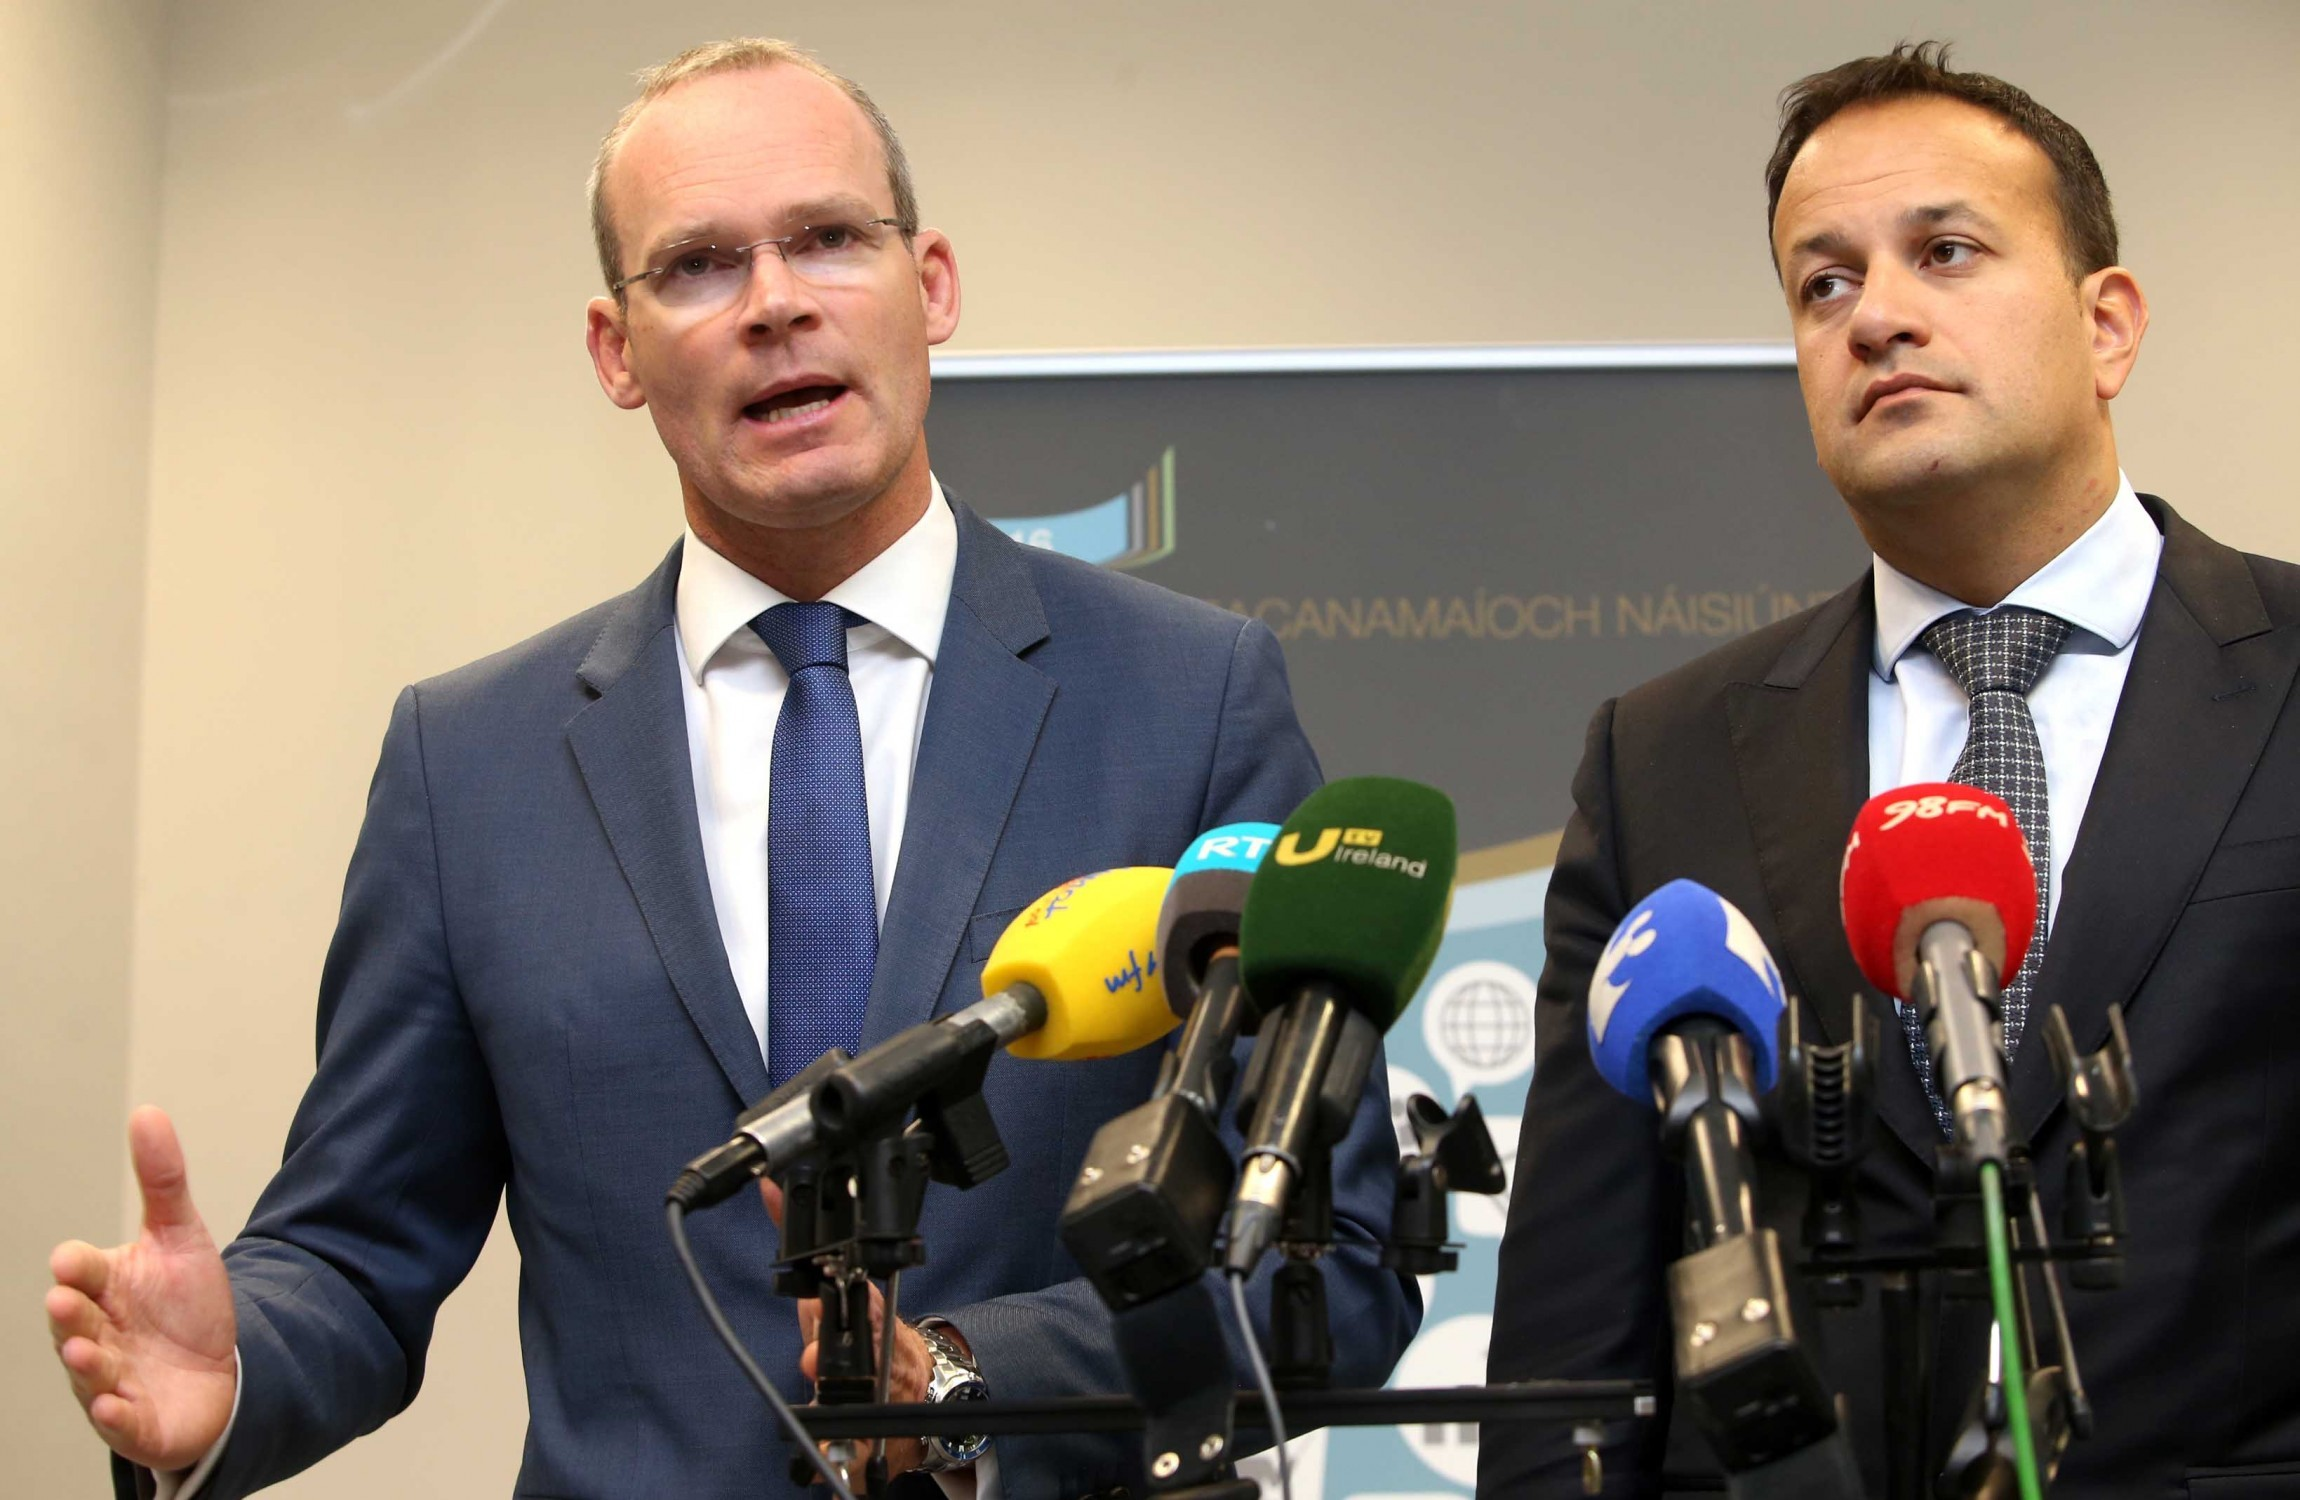 Leo Varadkar To Be Irelands First Openly Gay Prime Minister